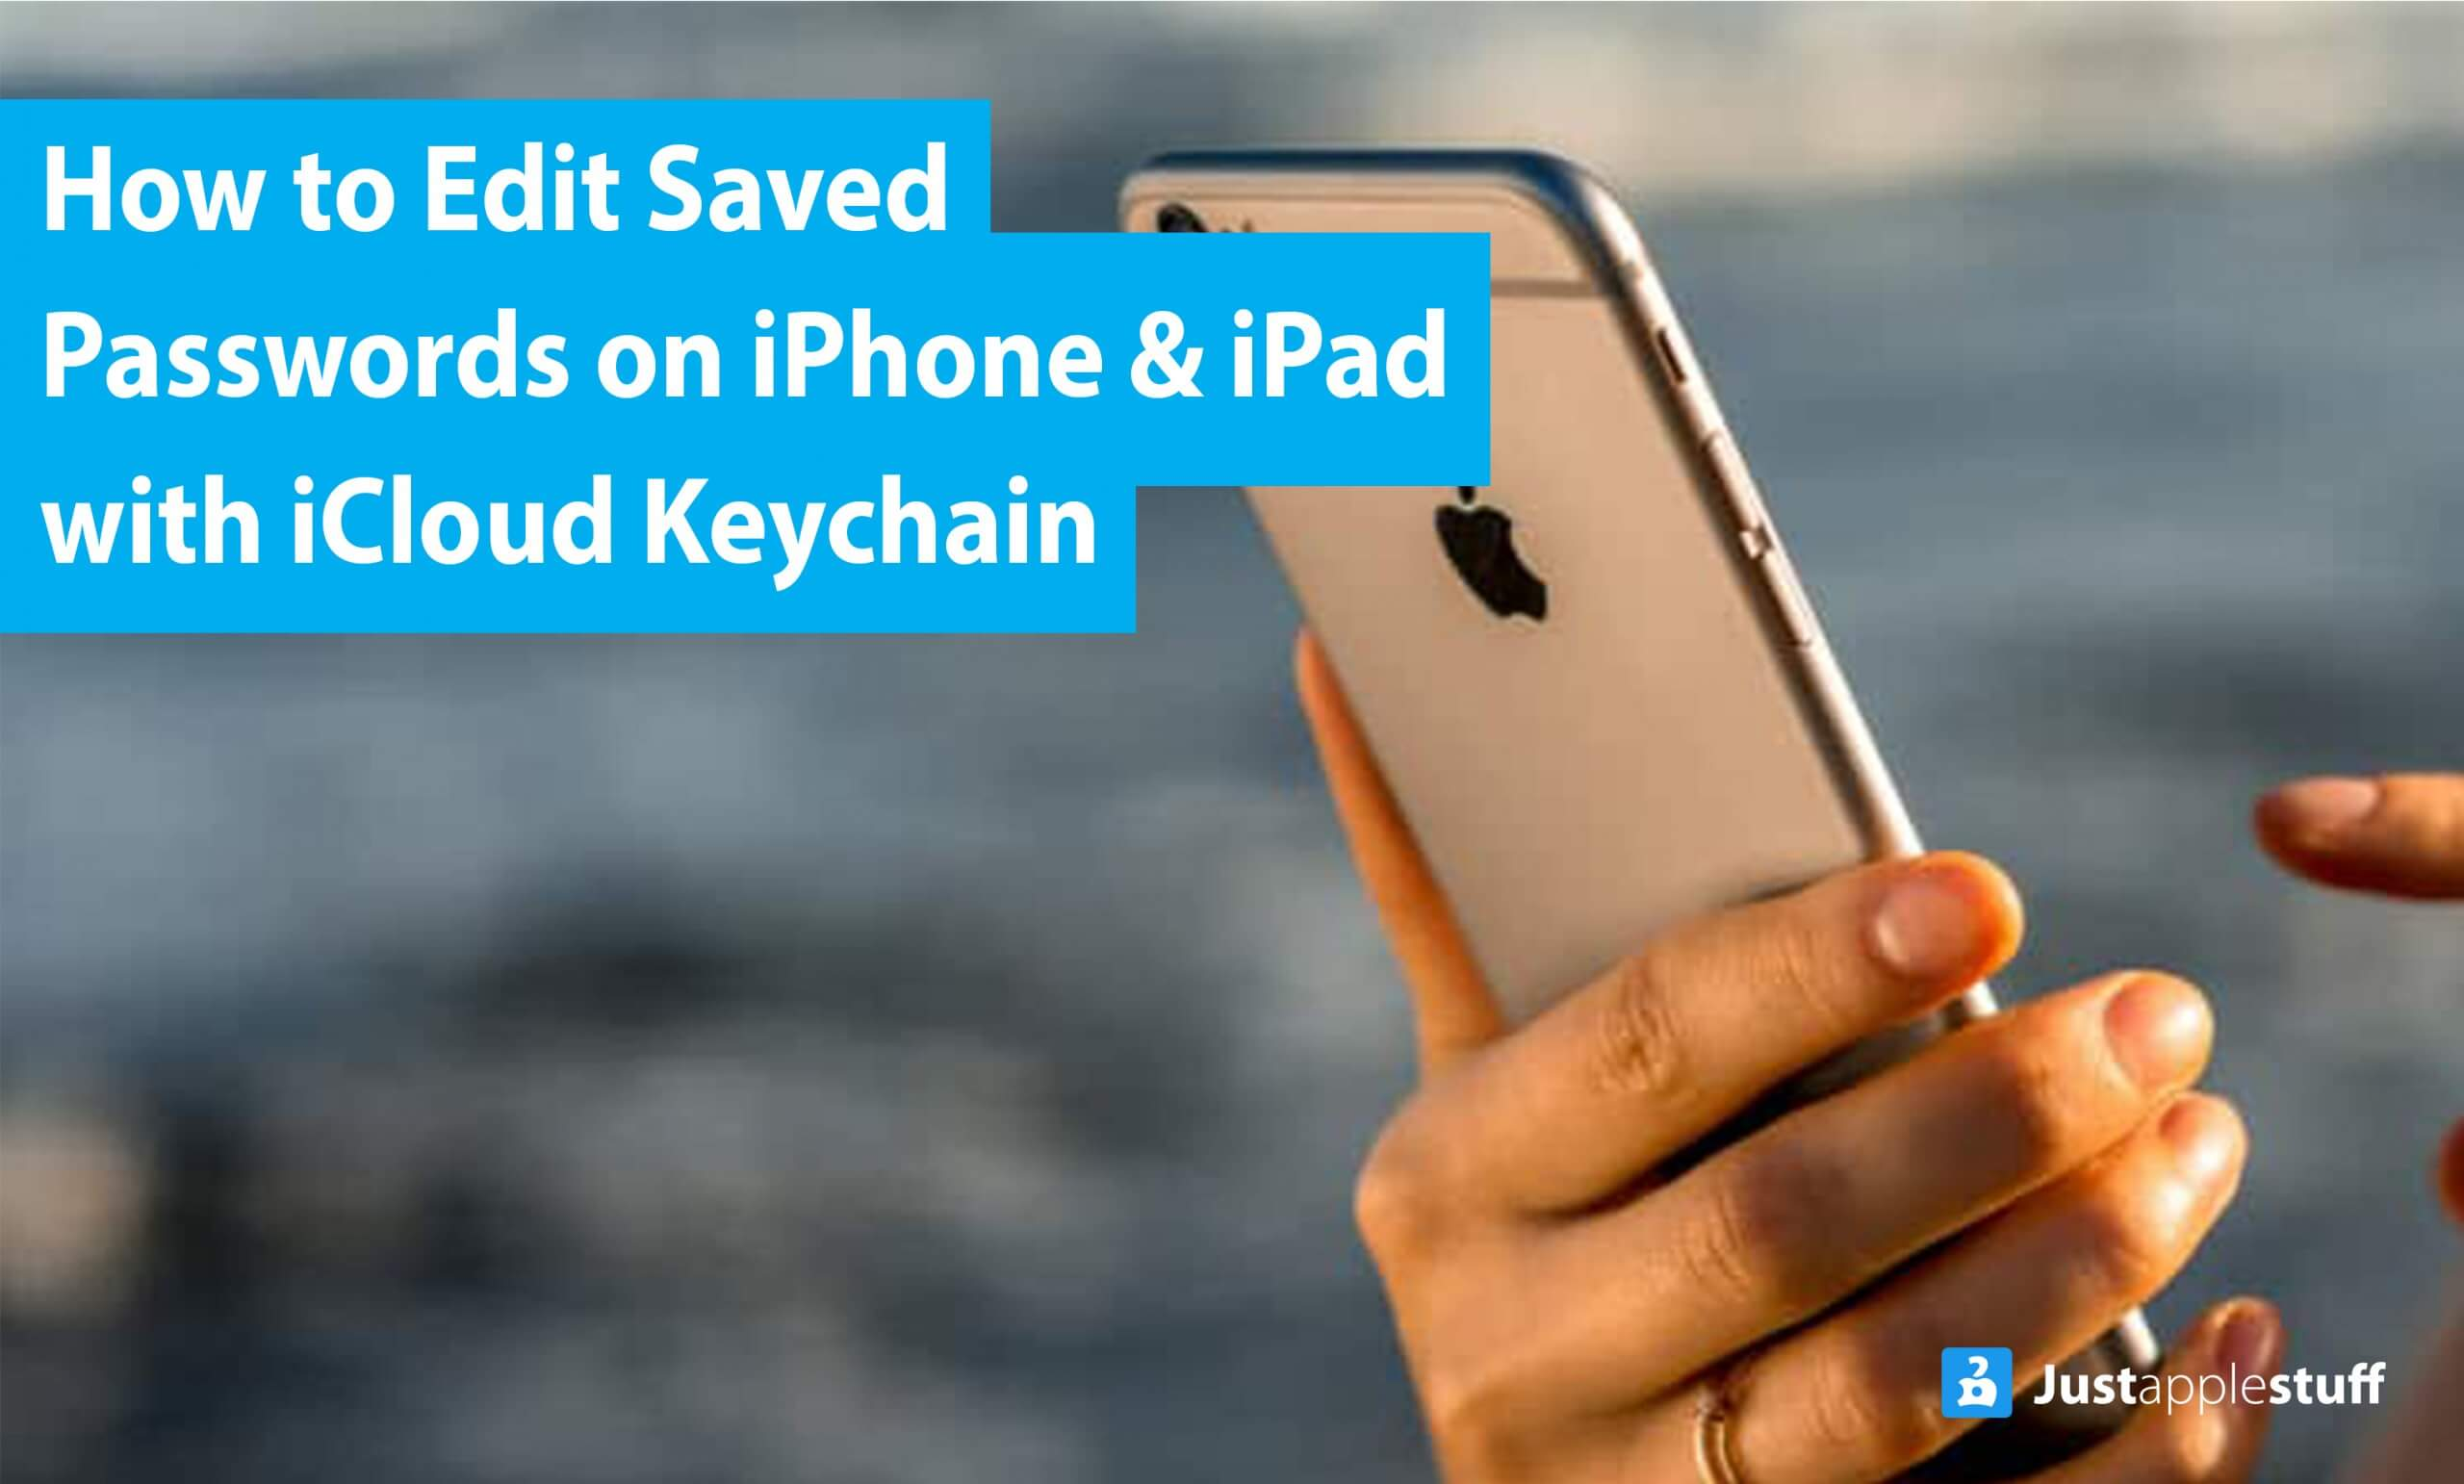 How to Edit Saved Passwords on iPhone & iPad with iCloud Keychain